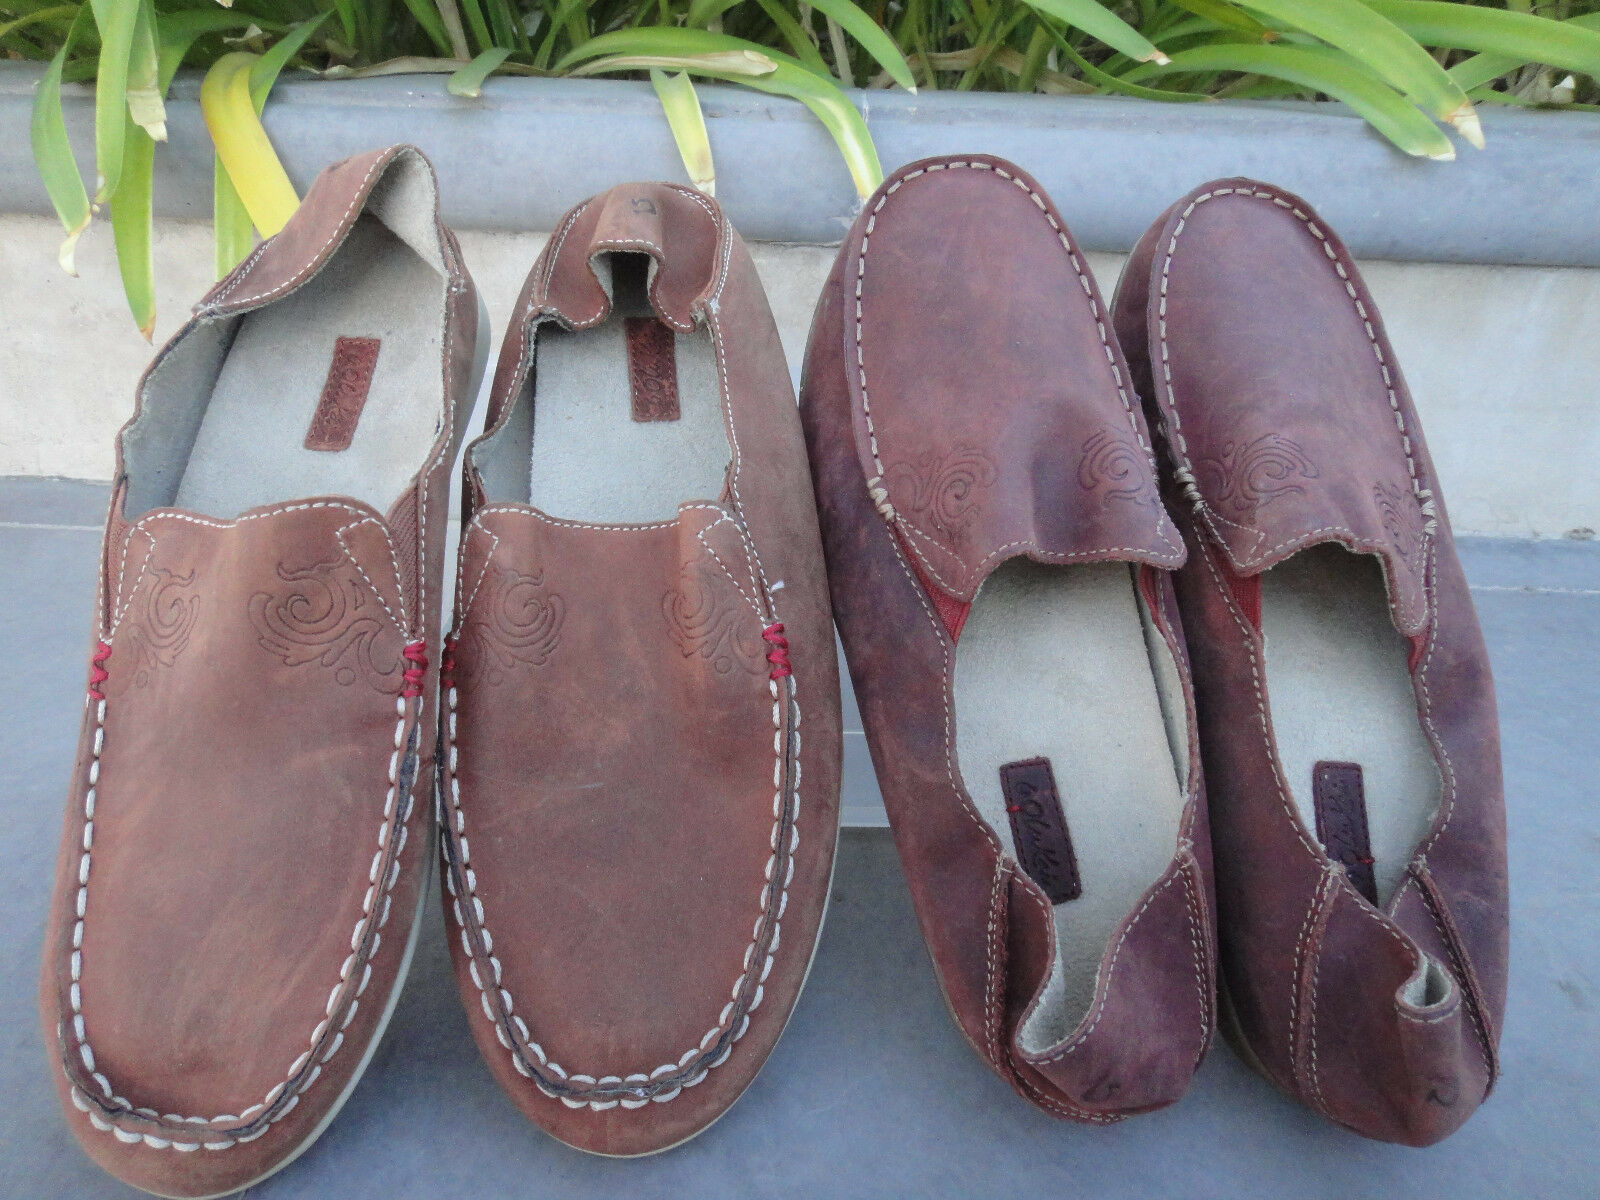 OluKai NOHEA NUBUCK NUBUCK NUBUCK Leather Slip on w Drop in Heel rosso Clay or Koa MSRP  110 d80db4